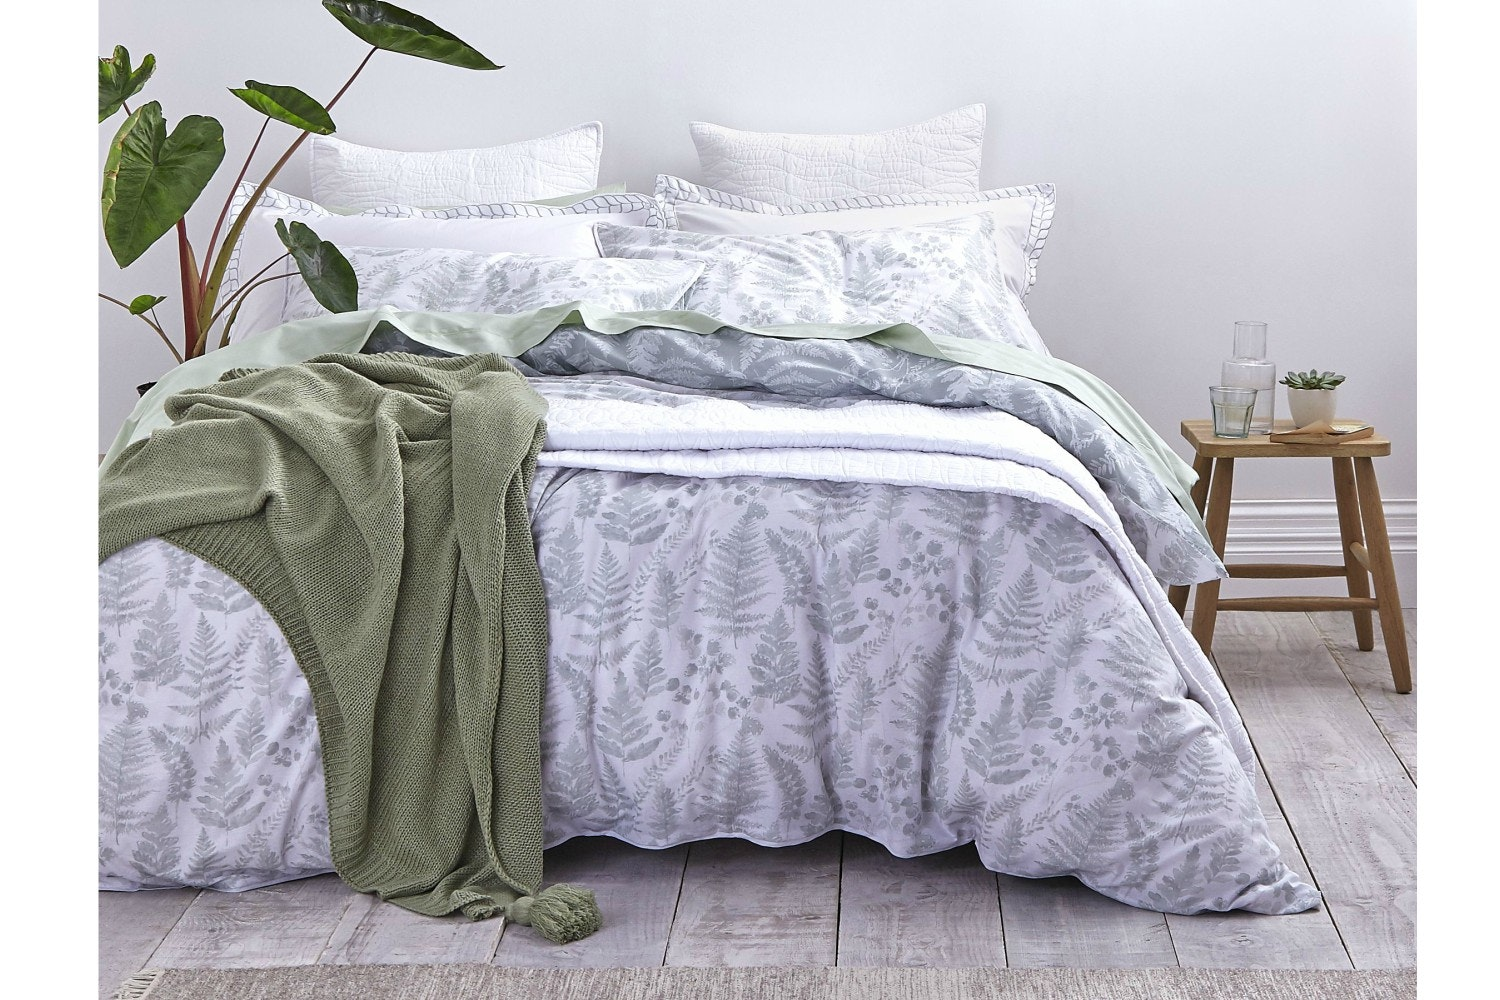 Green Leaf Cotton Print Single Duvet Cover Set